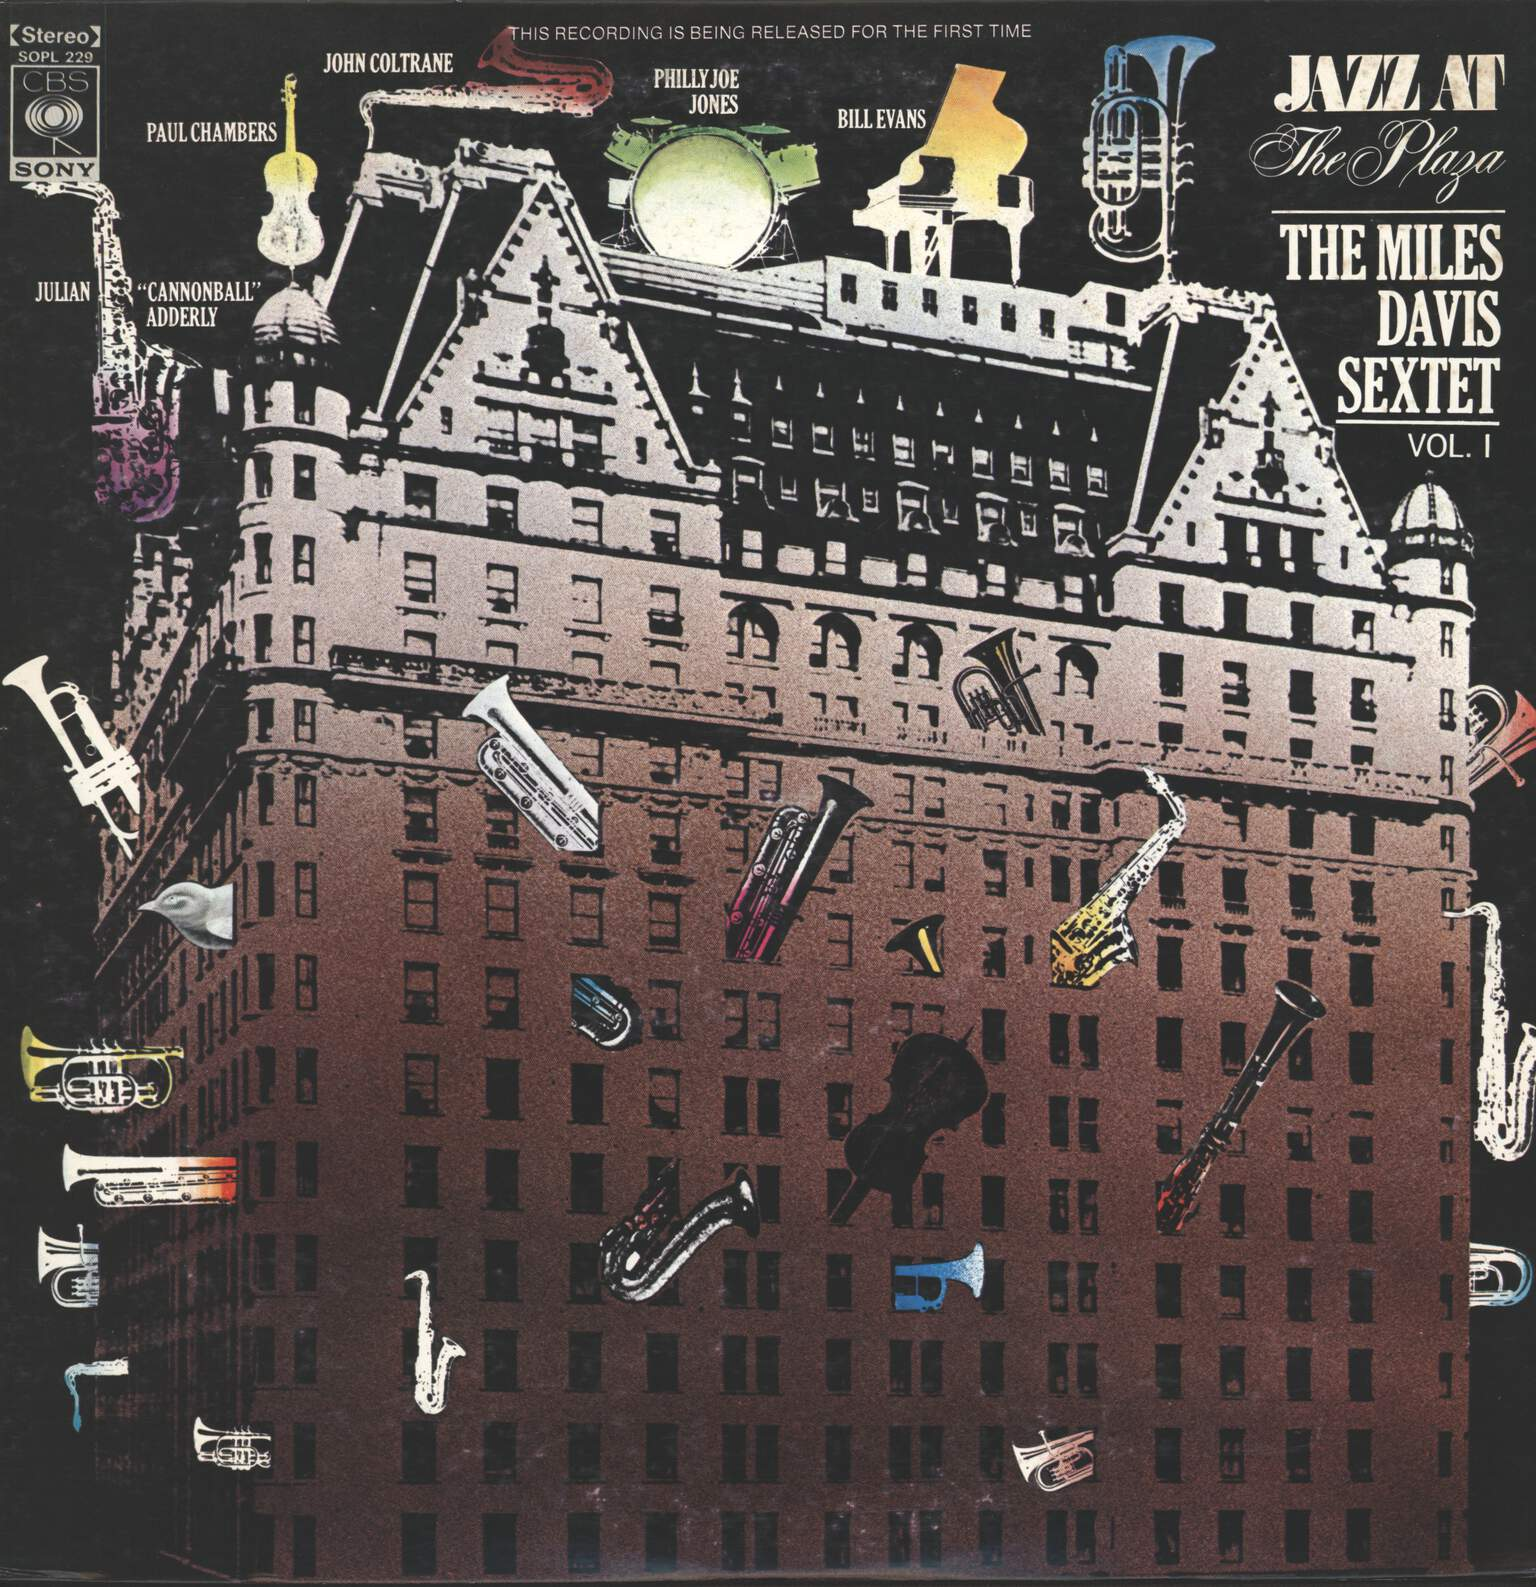 Miles Davis Sextet: Jazz At The Plaza Vol. 1, LP (Vinyl)